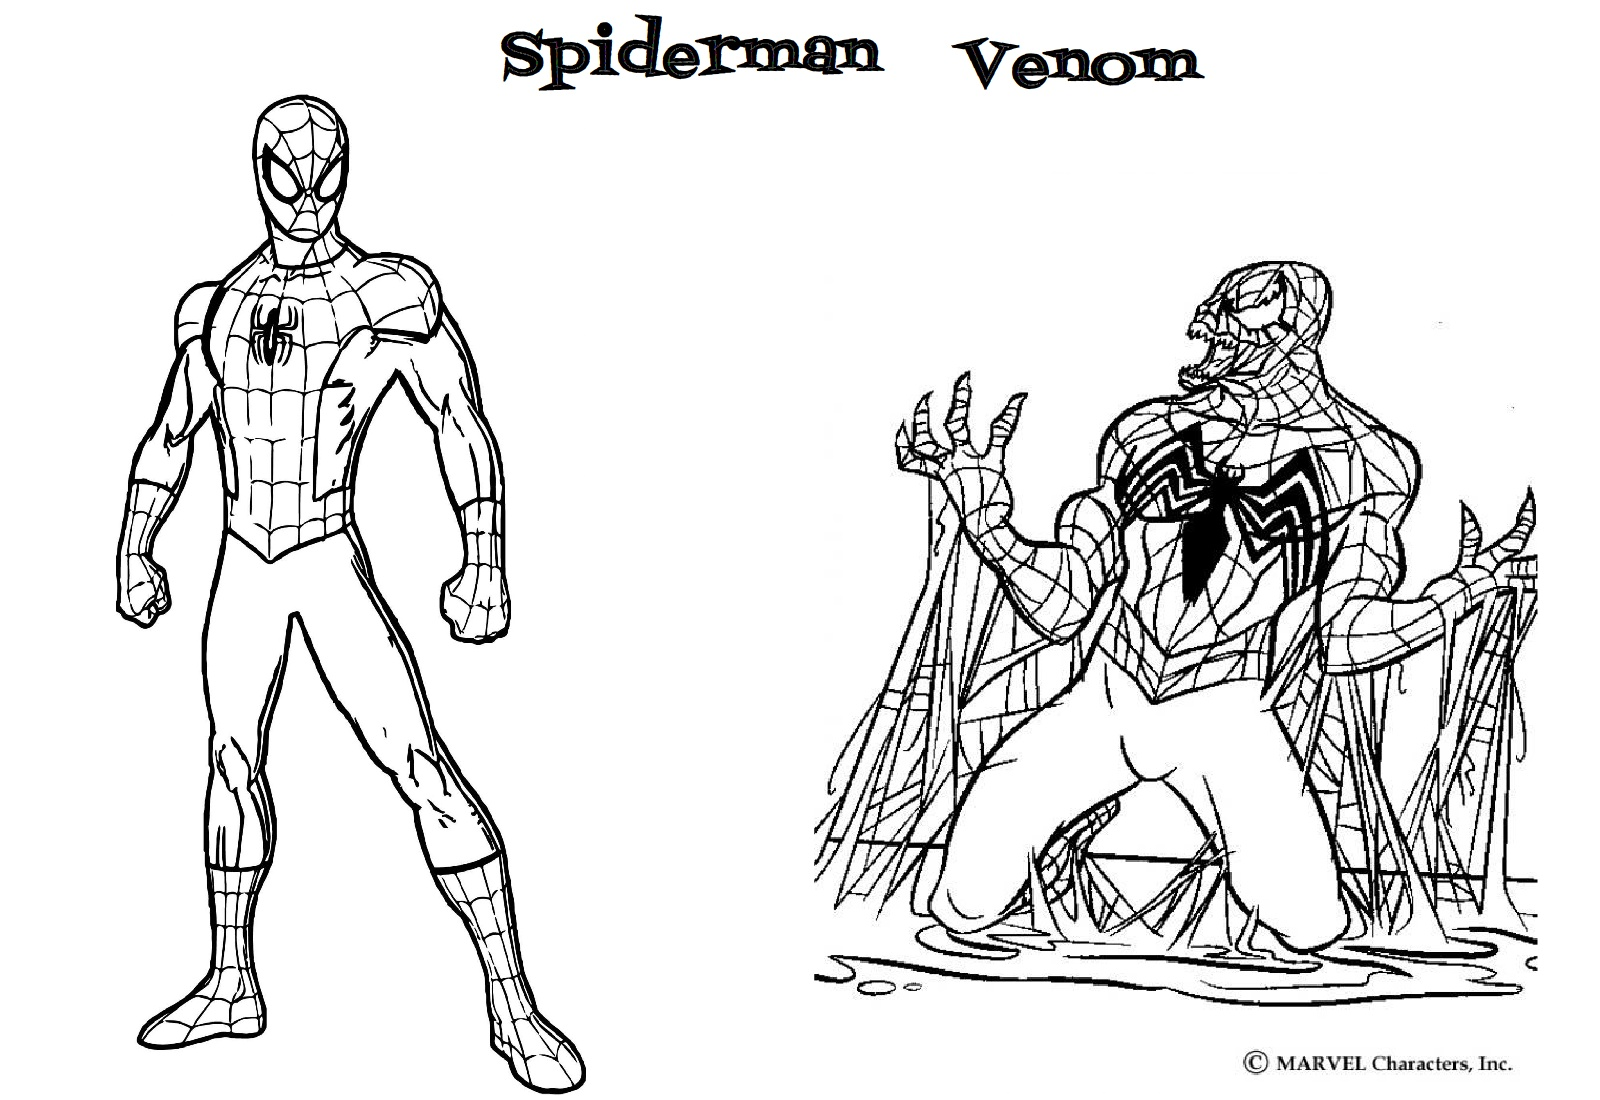 Spiderman Venom Coloring Page - Print and Color Pages